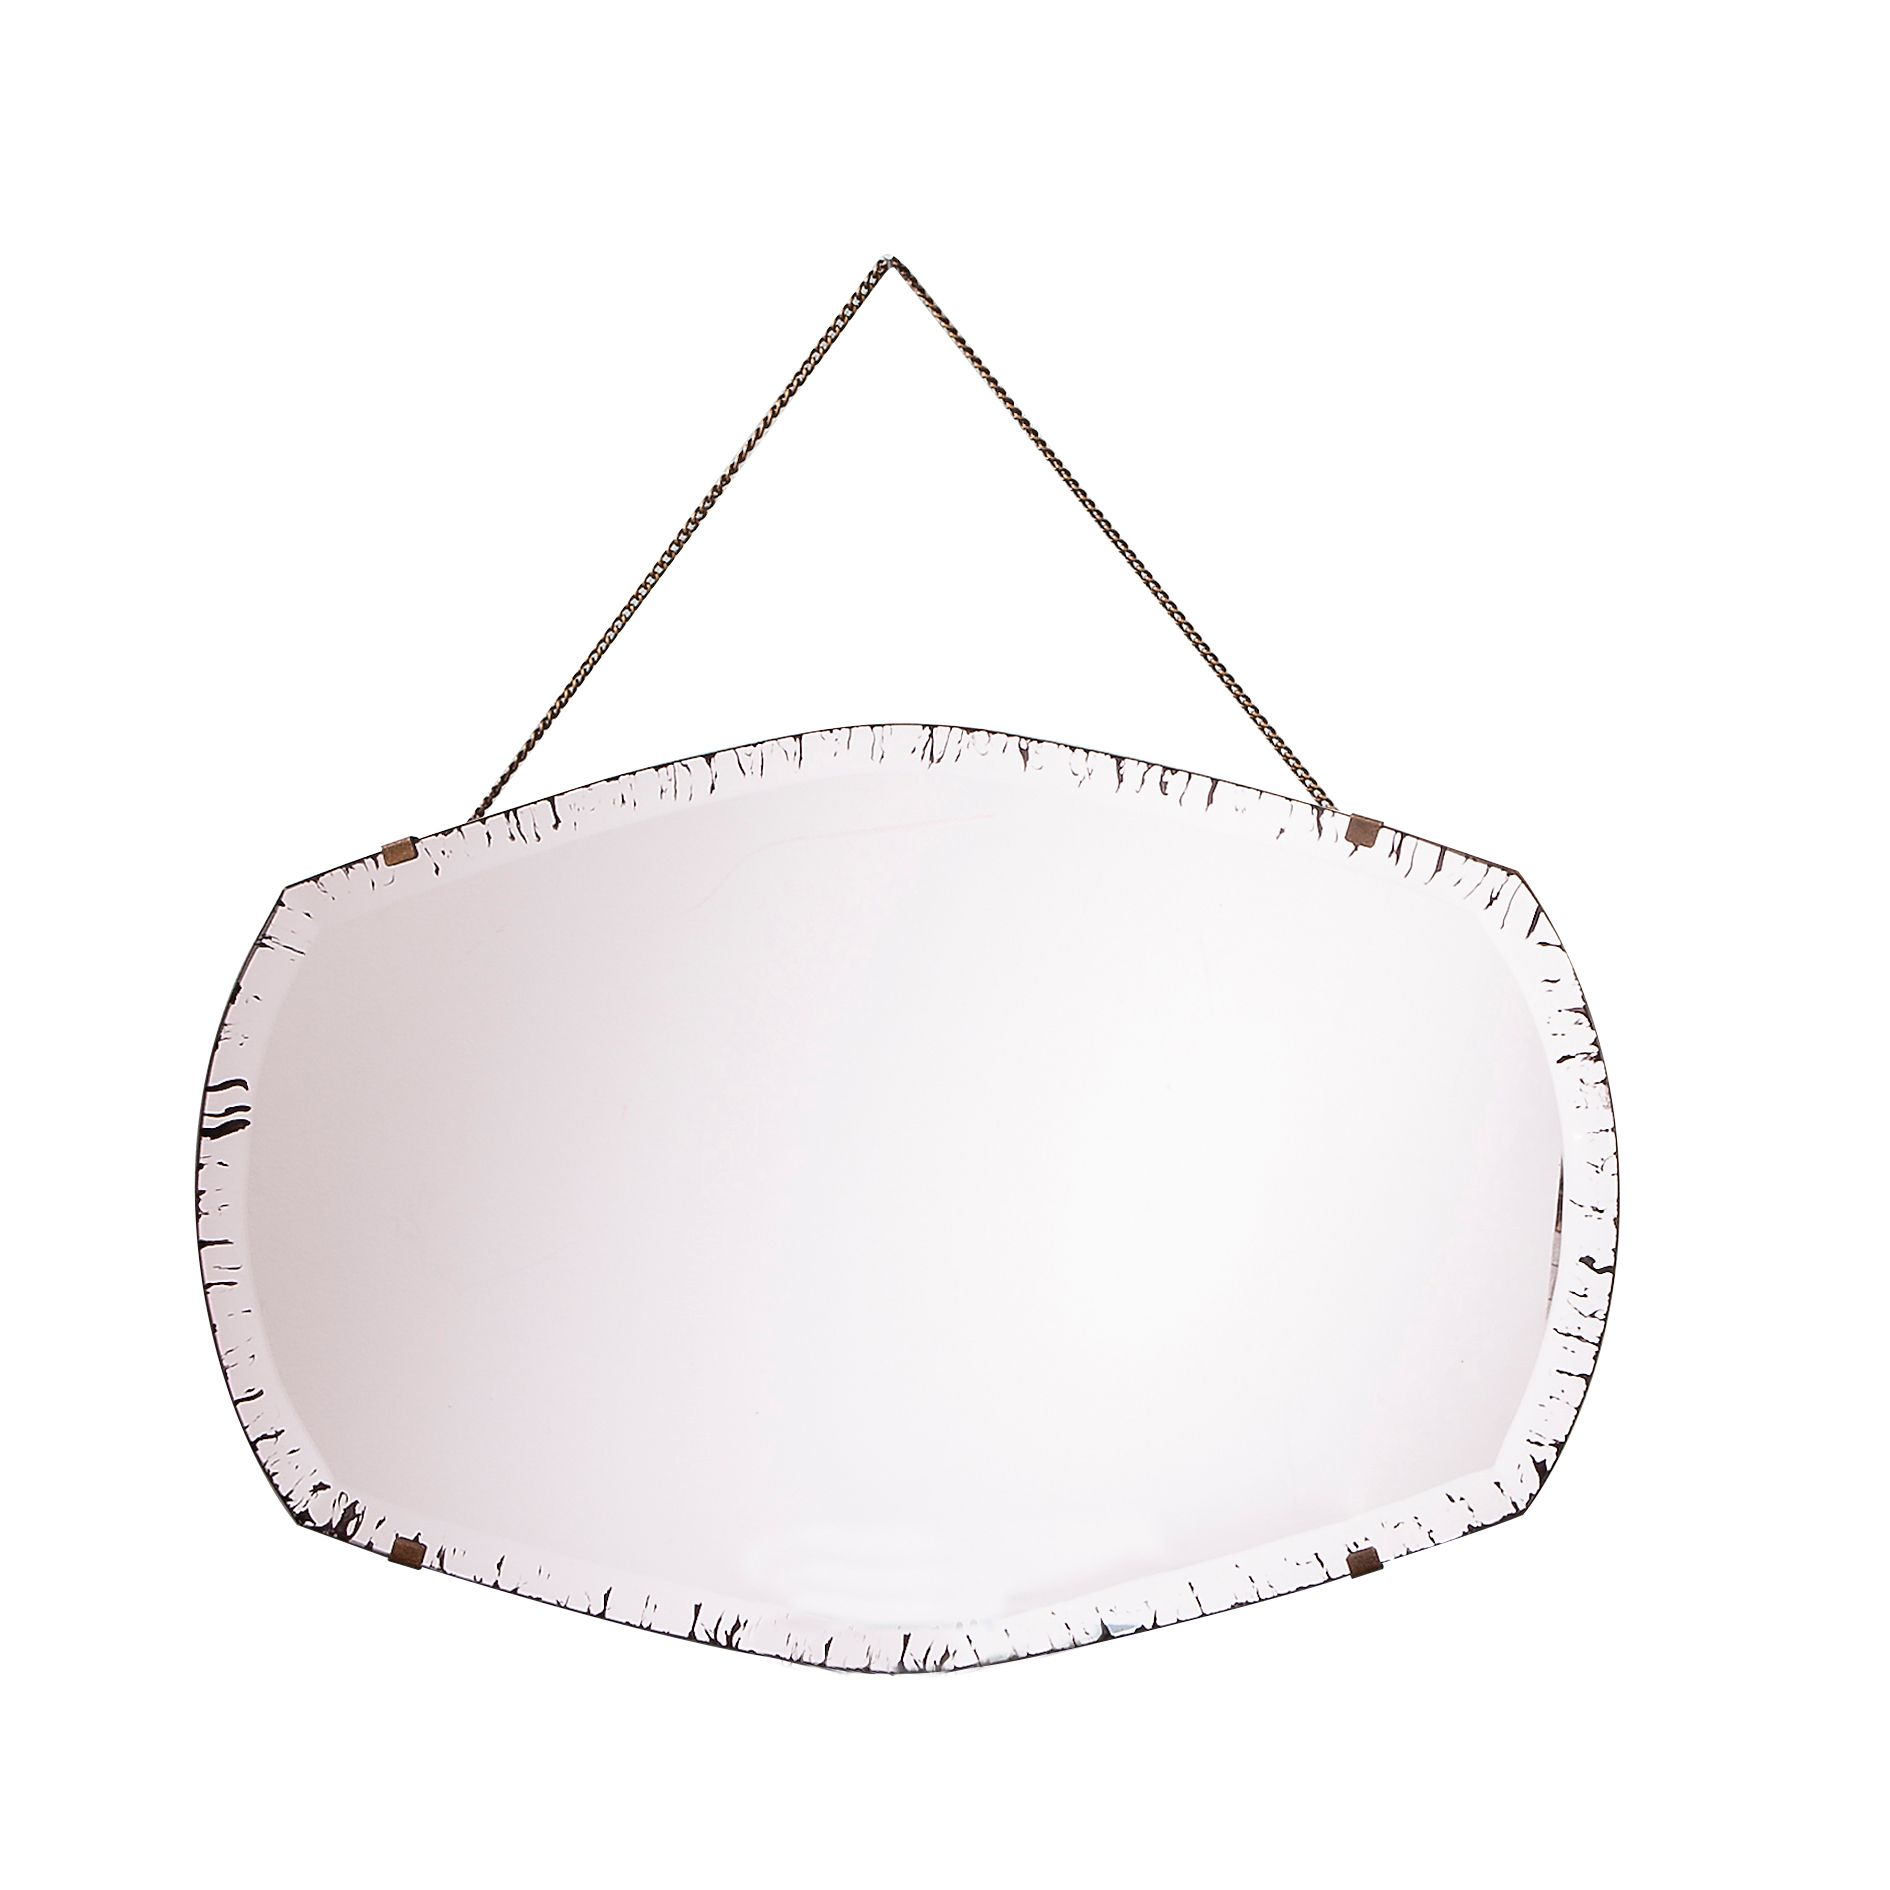 Hepworth antique mirror 53 x 35cm